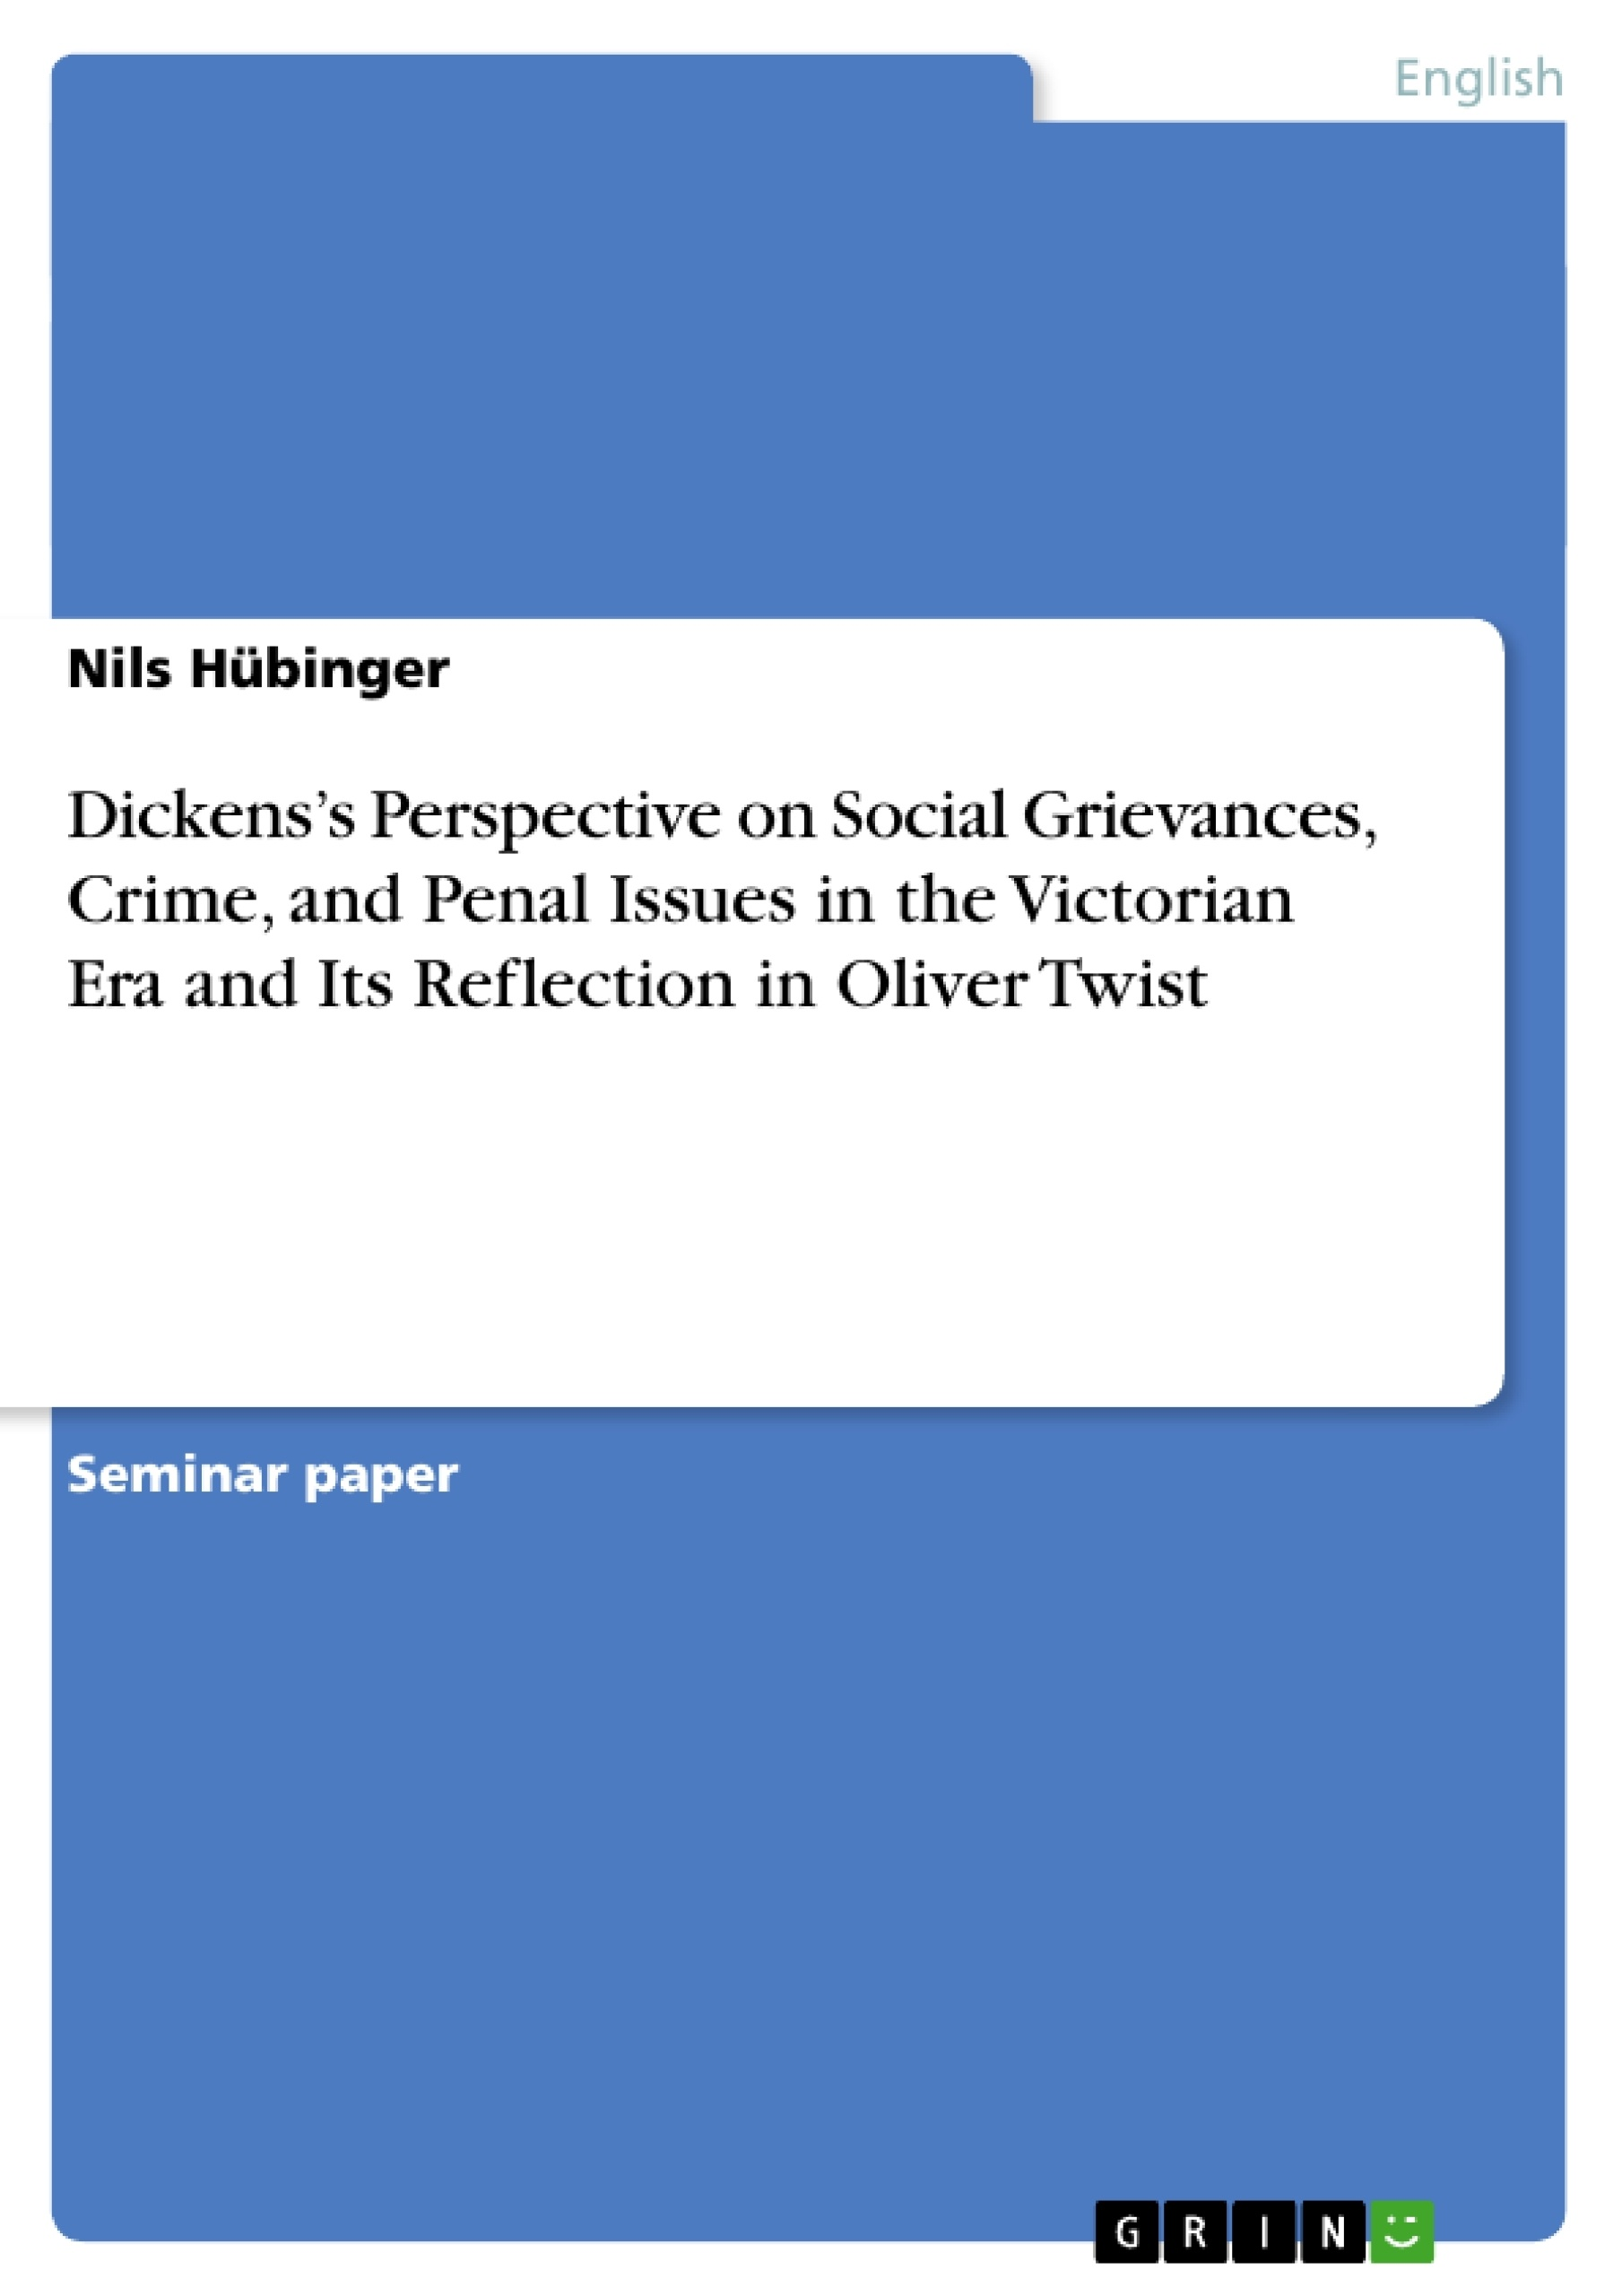 Title: Dickens's Perspective on Social Grievances, Crime, and Penal Issues in the Victorian Era and Its Reflection in Oliver Twist